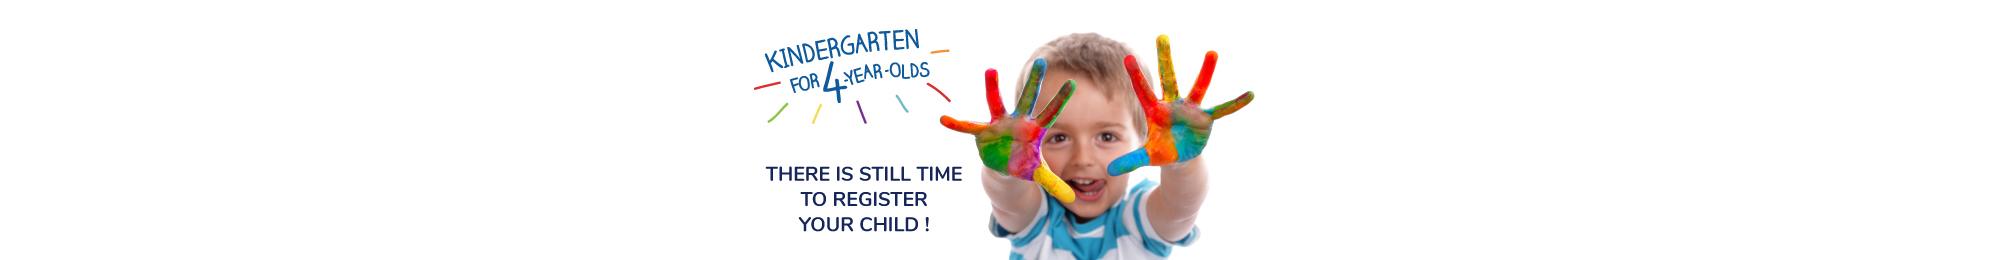 Educational childcare services + Kindergarden for 4-years-olds = More services for our children